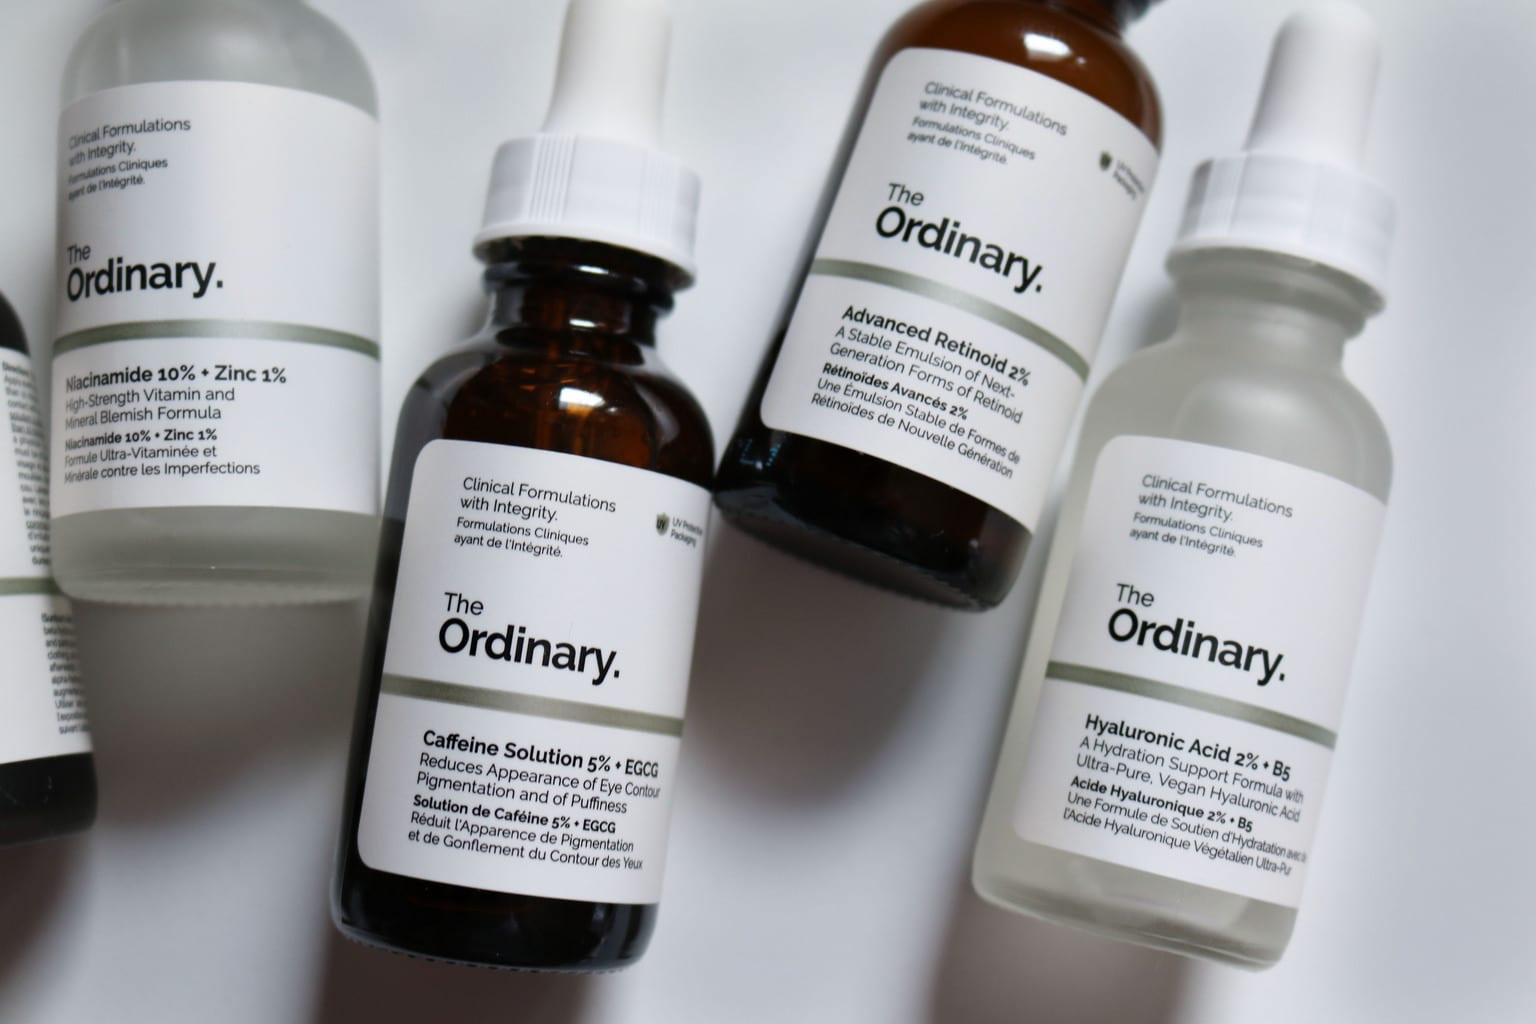 The Ordinary Skincare: Close ups for Caffeine Solution, Advanced Retinoid, Hylauronic Acid bottles